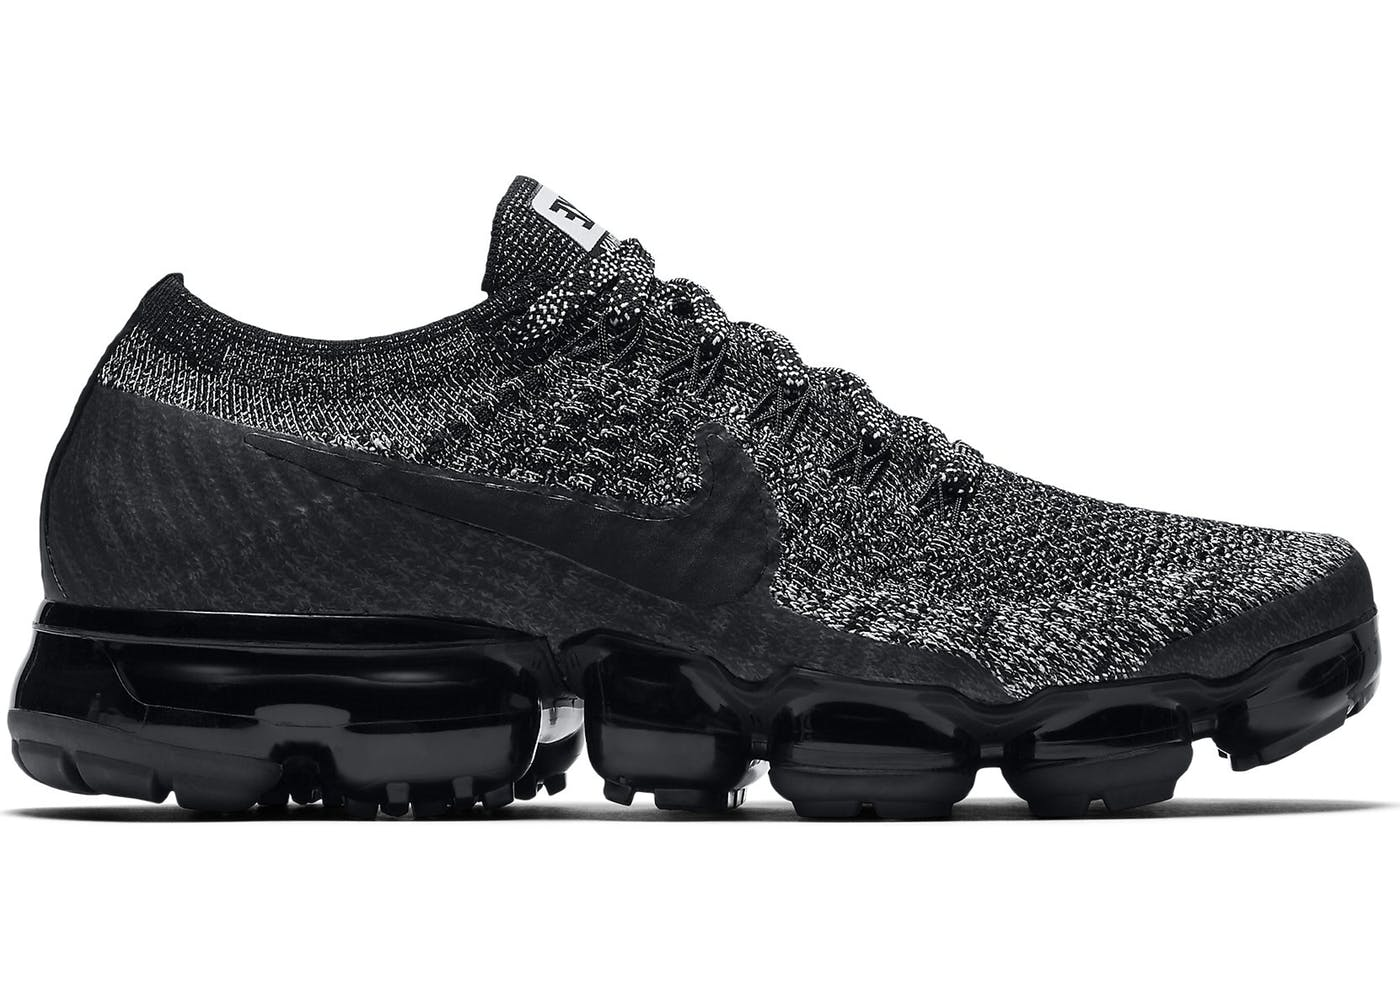 Nike W Air Vapormax Flyknit (Pale Grey, Black & Sail) End